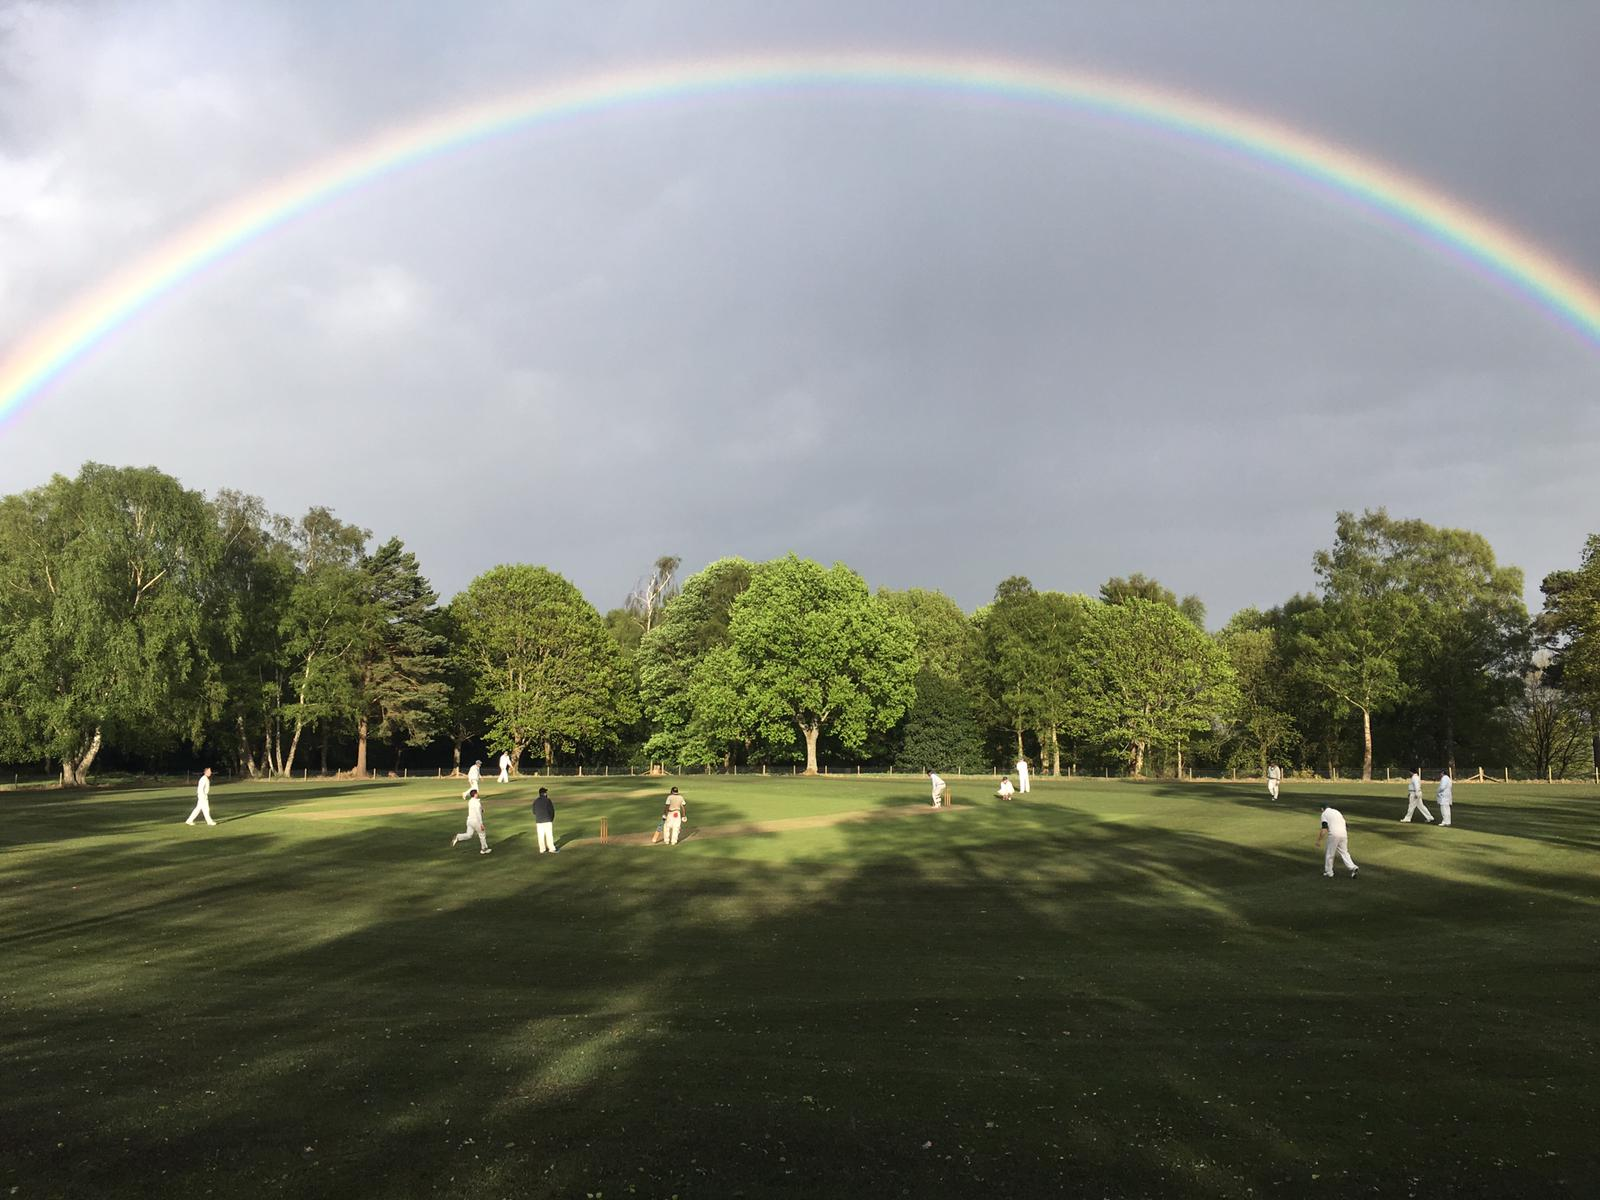 Holmbury Pride: The sun made a spectacular appearance on a gloomy day. Photo: Nigel Menzies